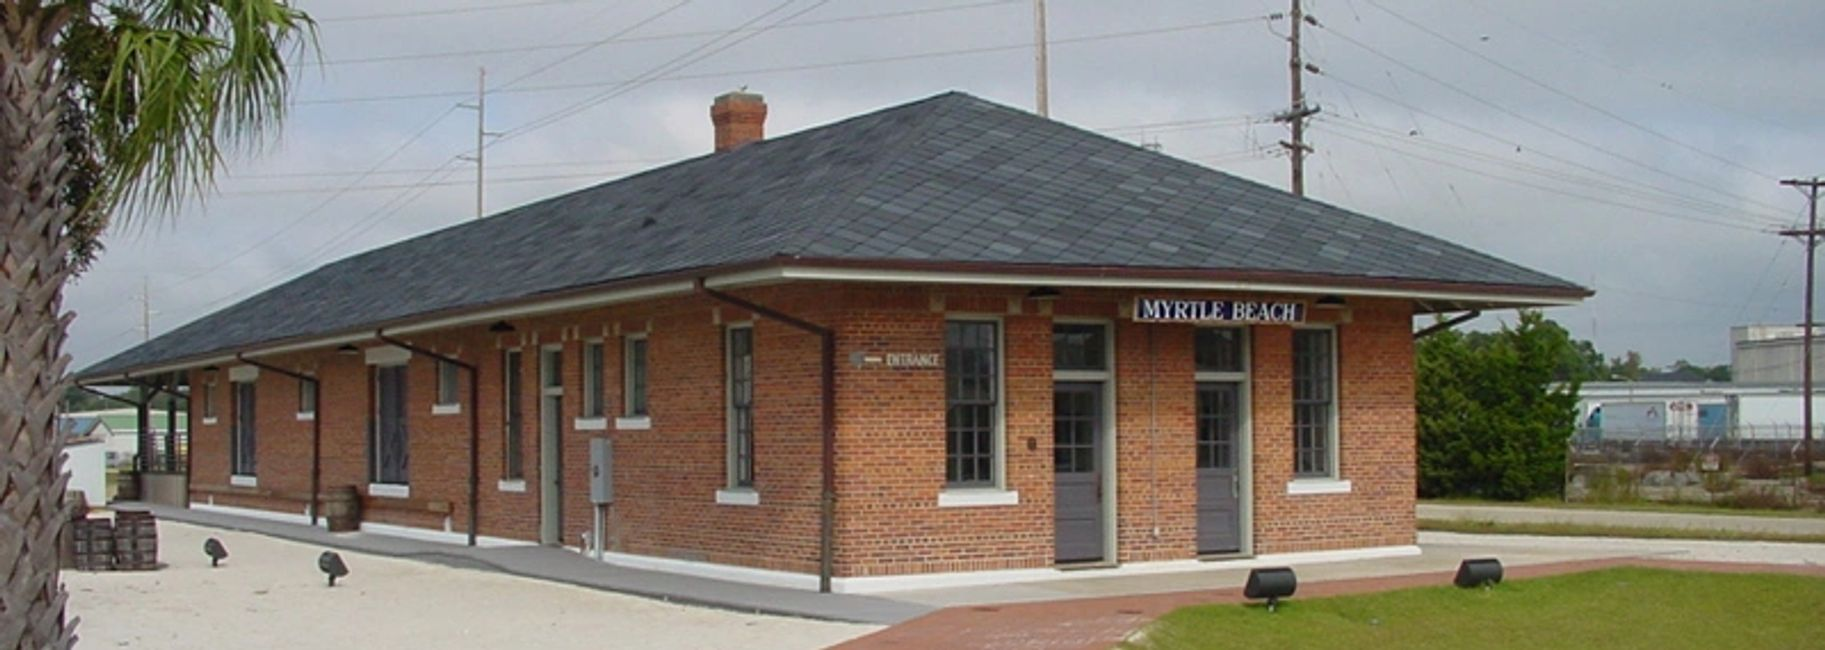 Historic Myrtle Beach Train Depot restoration in South Carolina